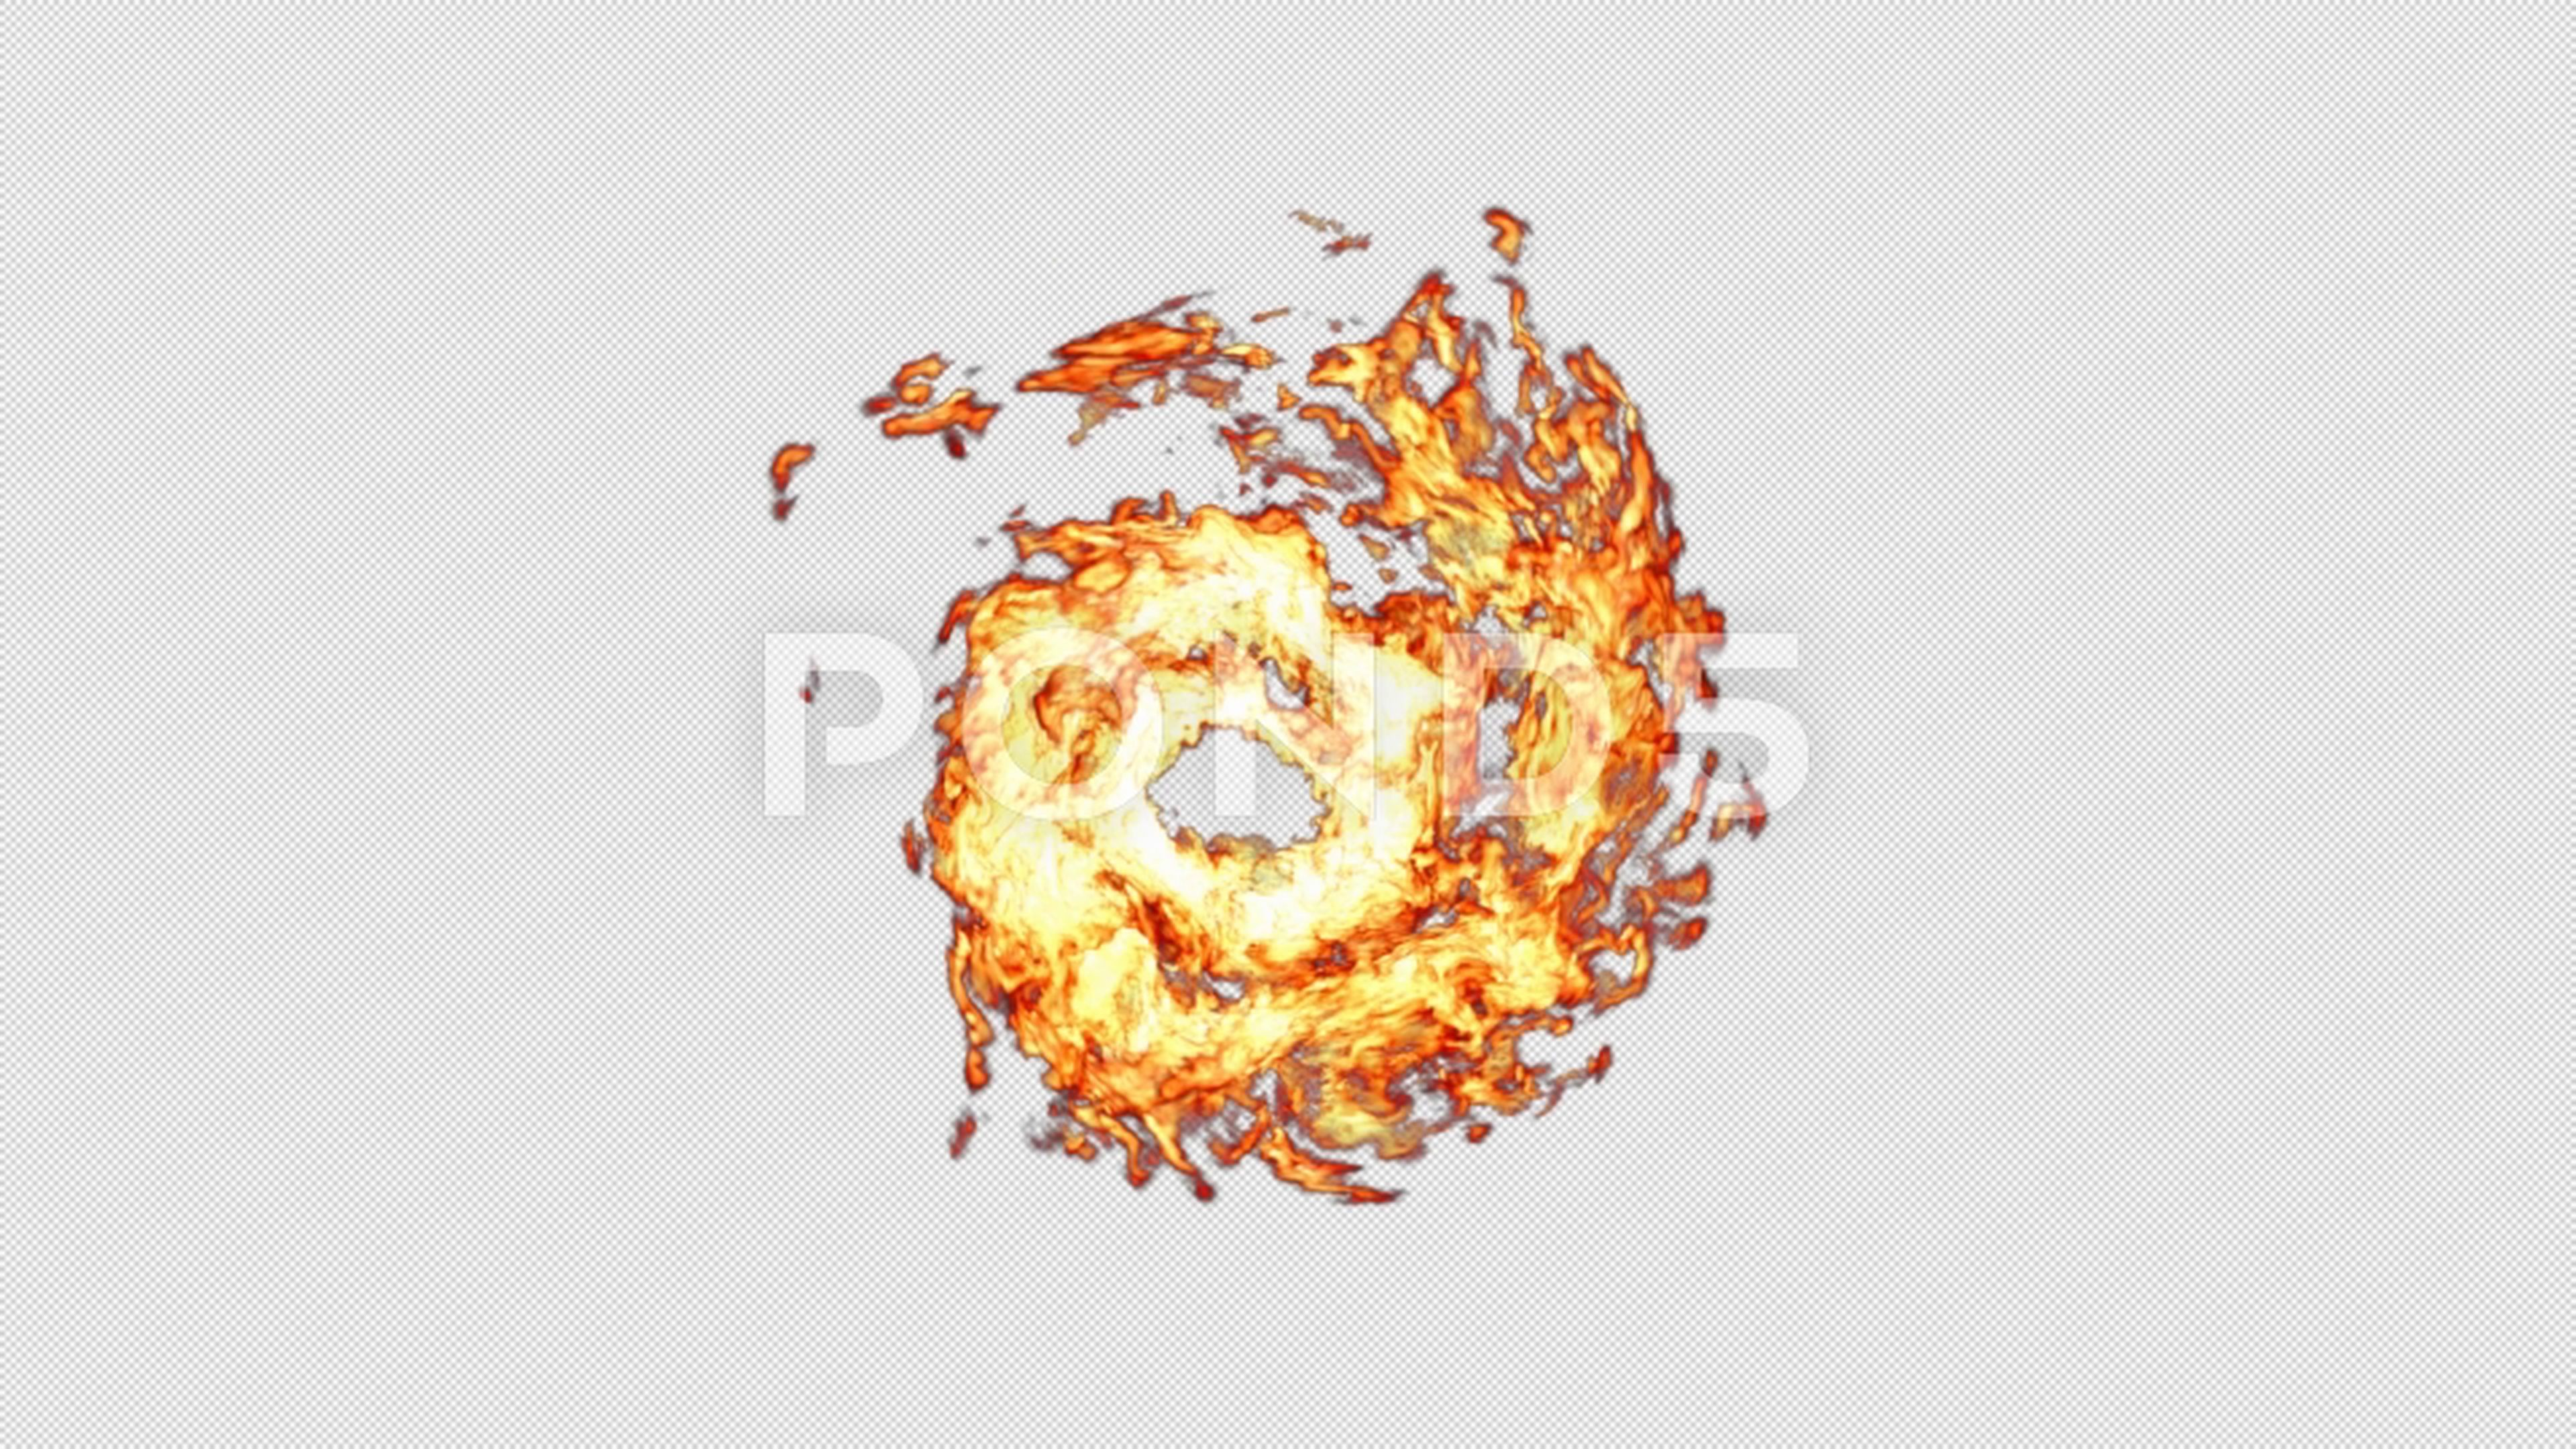 Animated Simulated Fire Hurricane Or Vortex Of Flames Stock Footage Ad Fire Hurricane Animated Simulated In 2020 Vortex Animation Flames